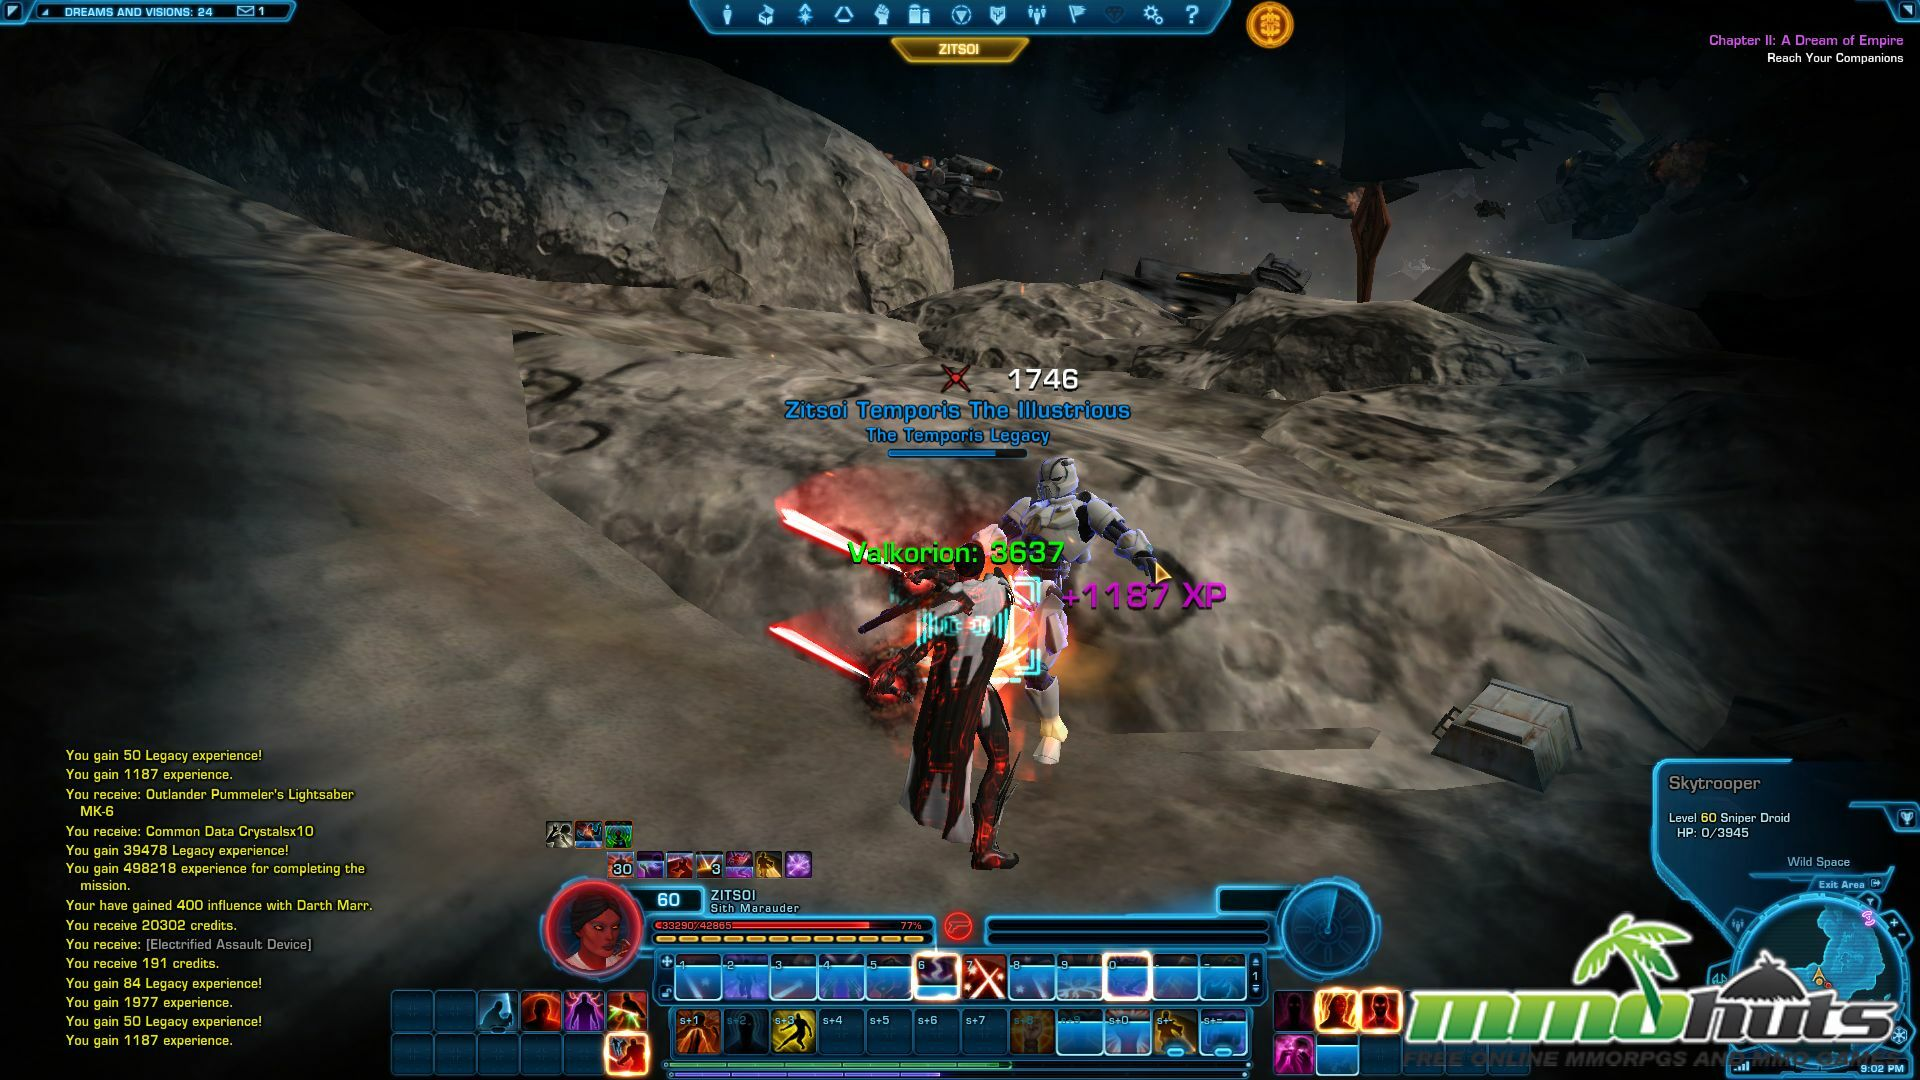 SWTOR: Knights of the Fallen Empire Review